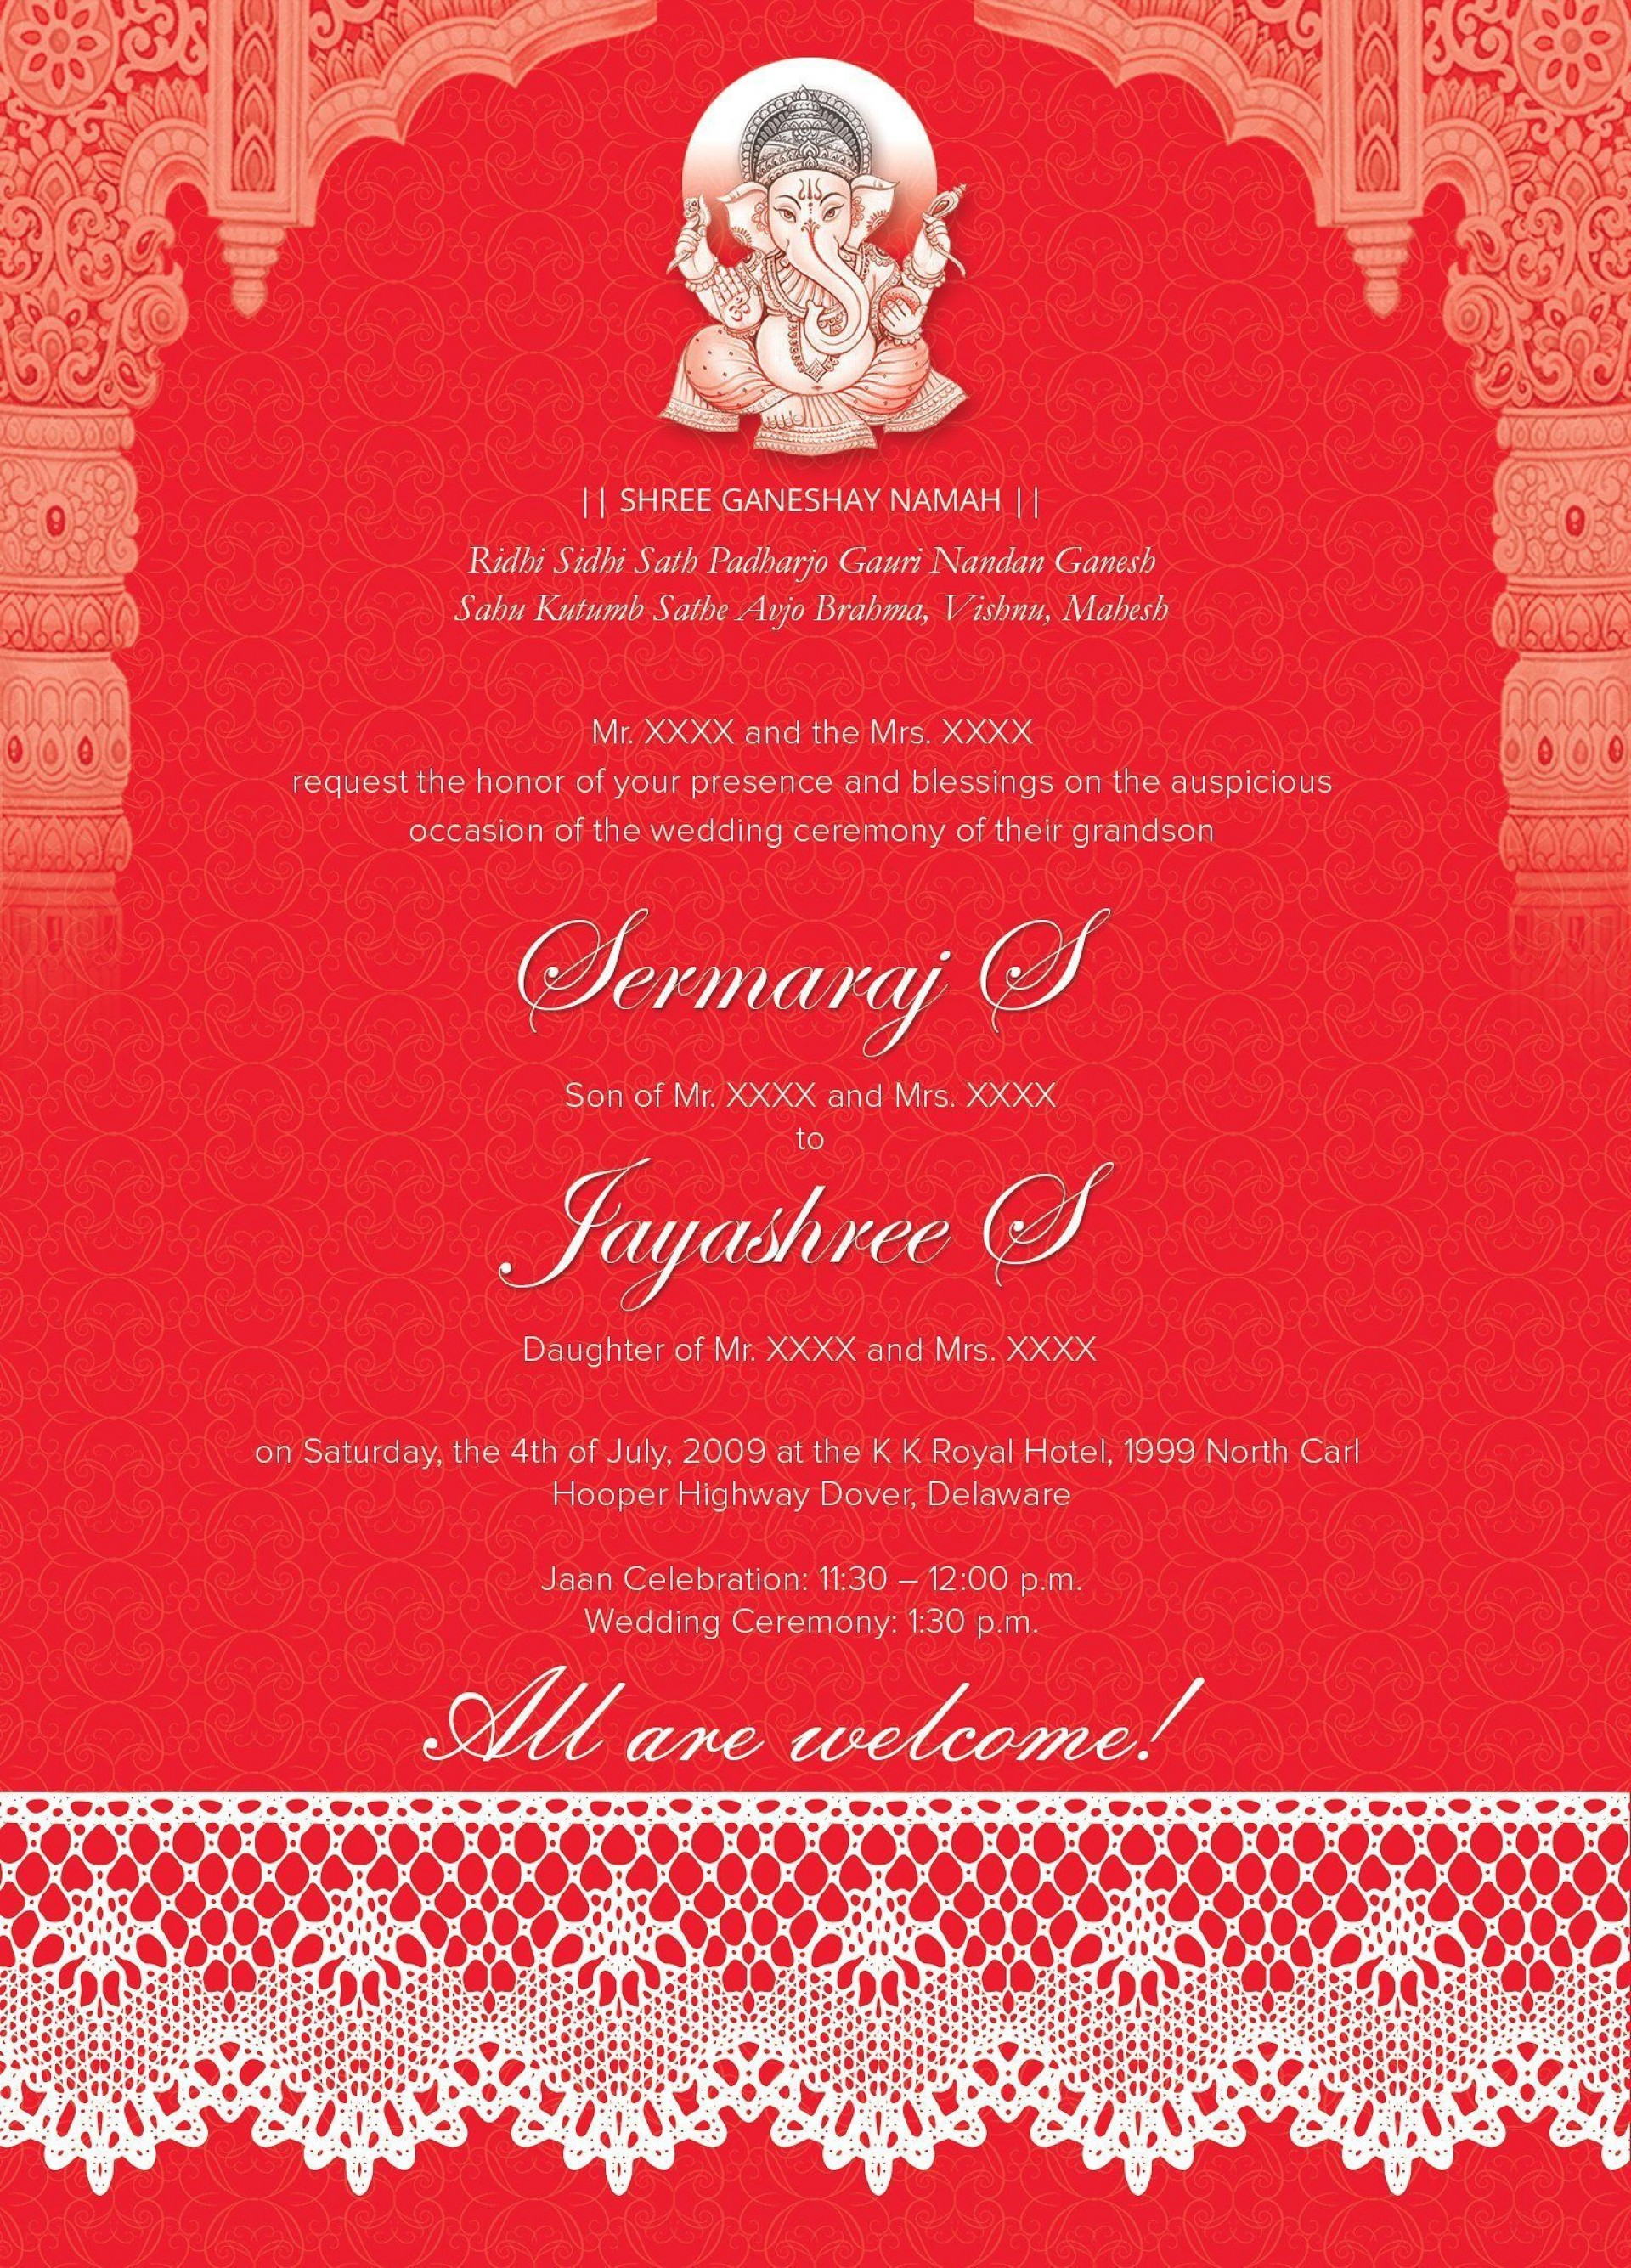 005 Marvelou Free Online Indian Wedding Invitation Card Template Image 1920